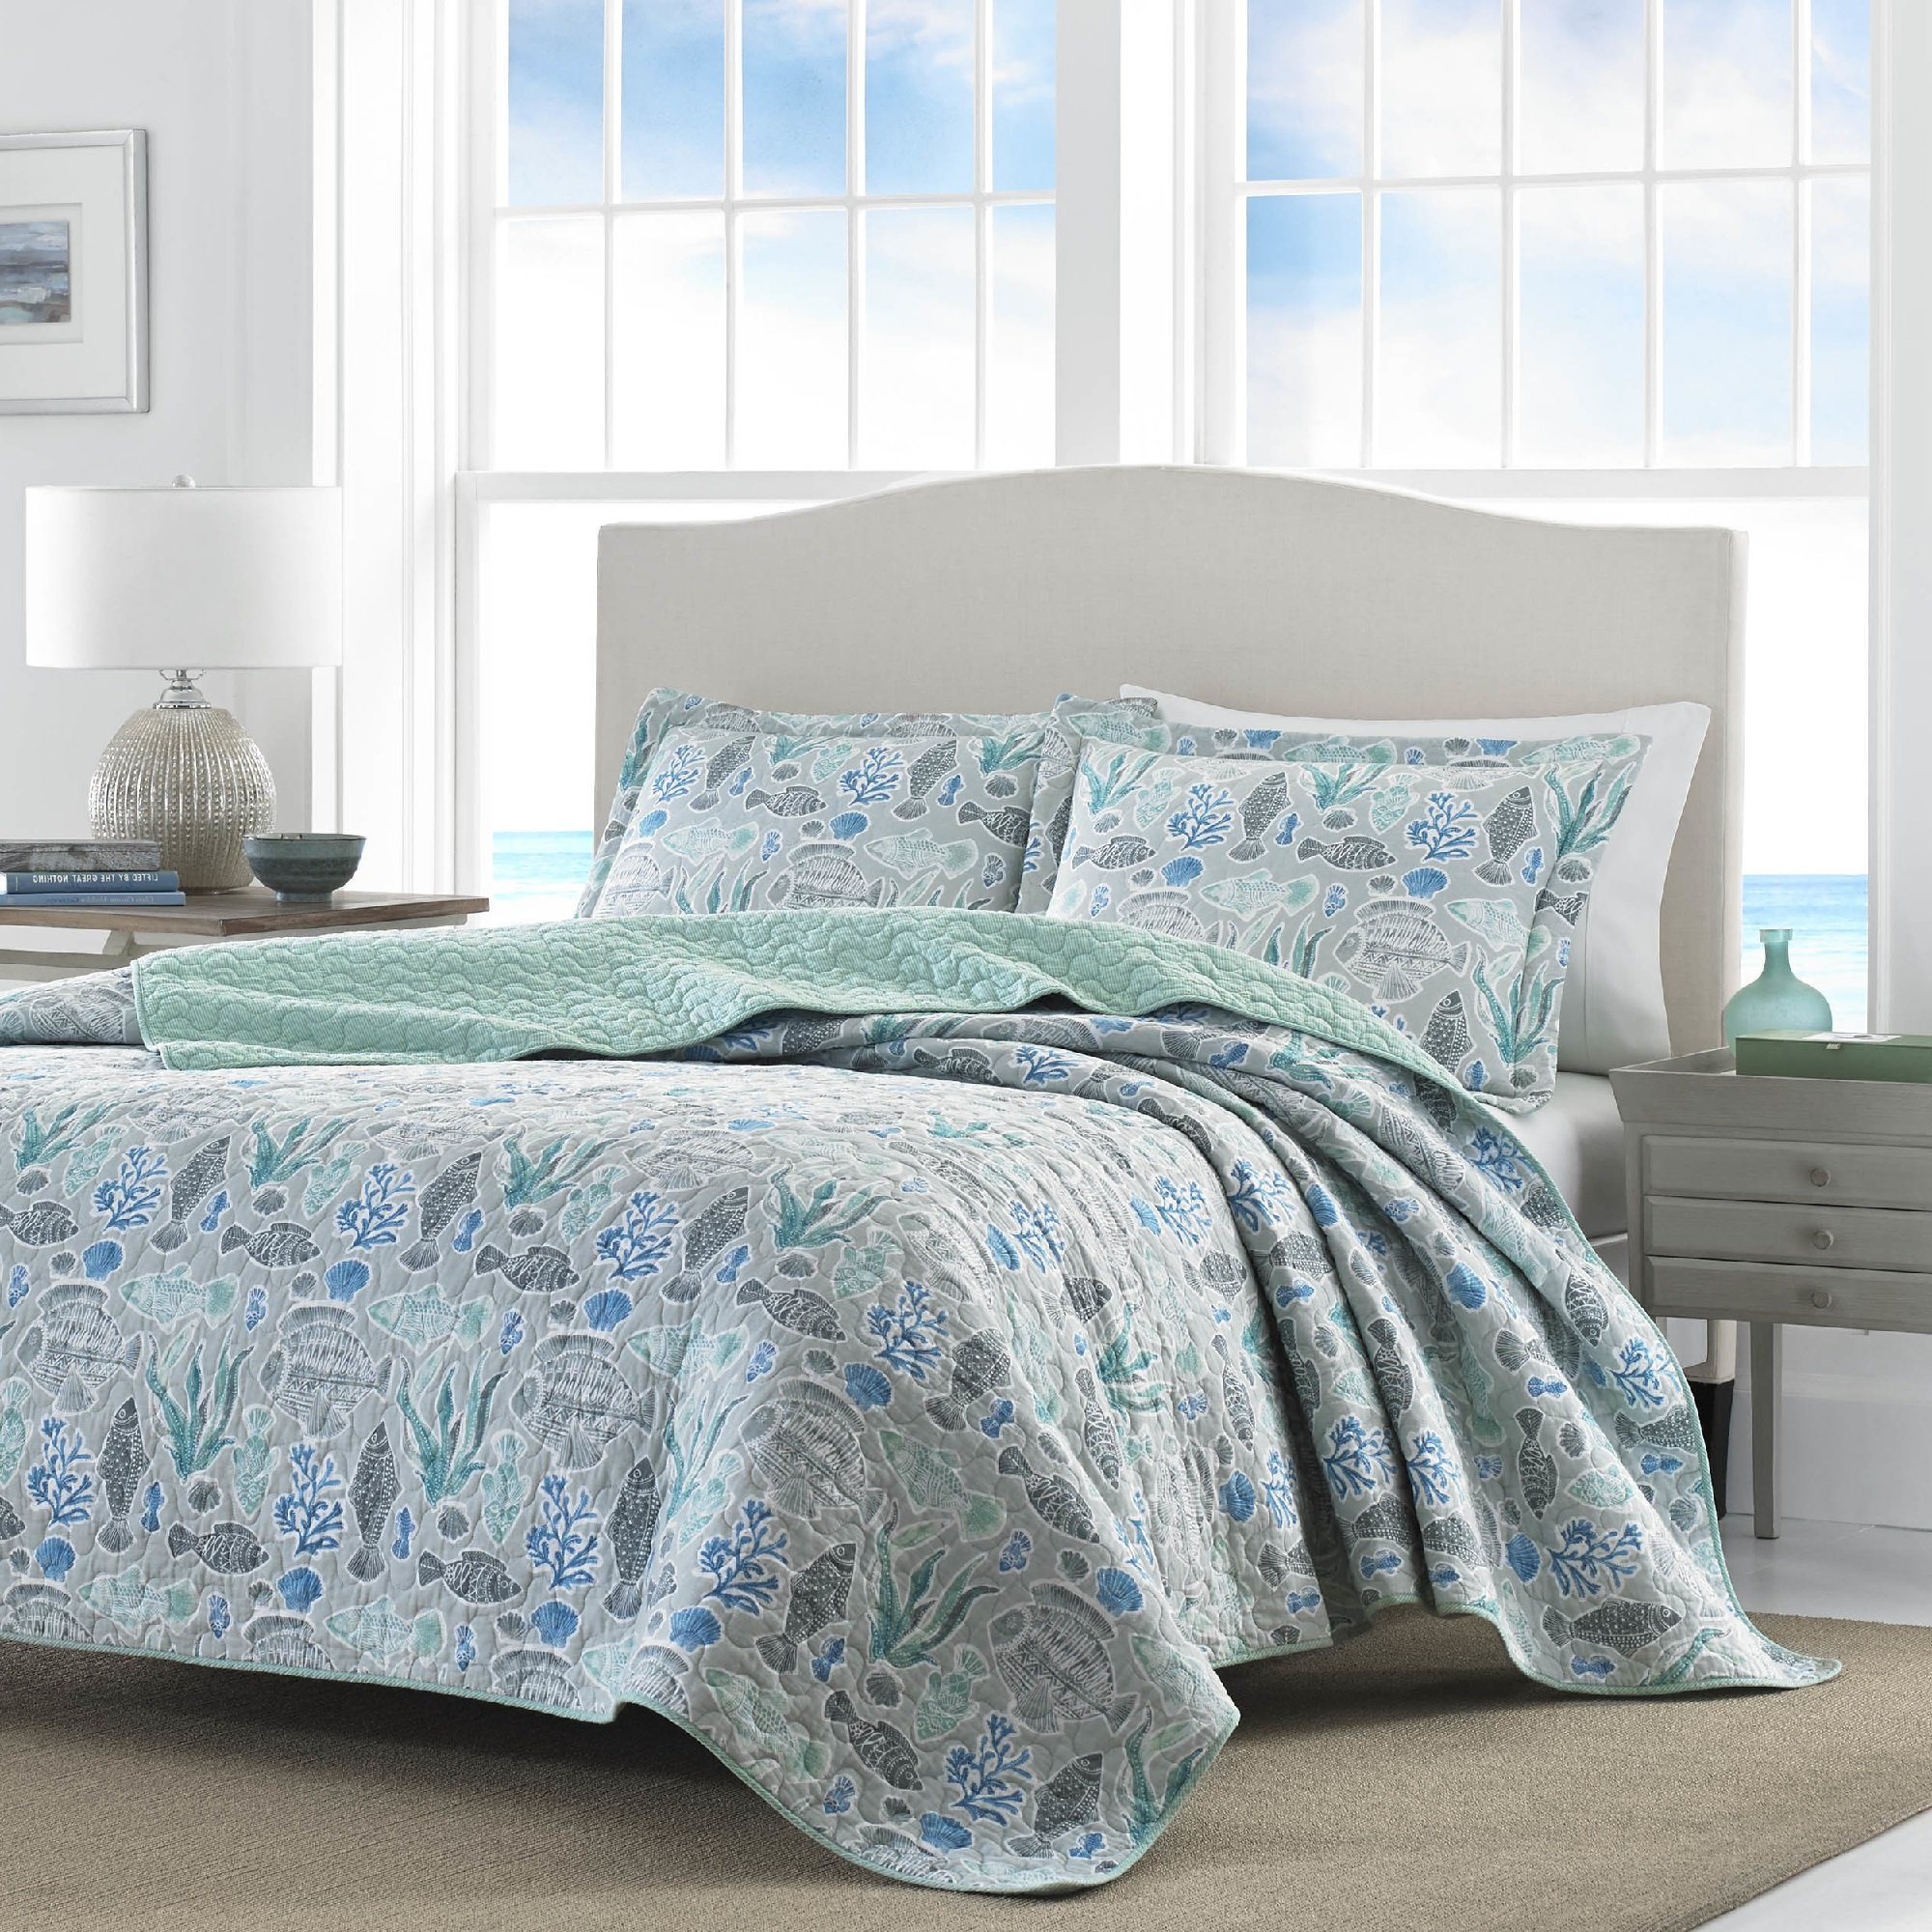 2 Piece Underwater Sea Creatures Design Quilt Set Twin Size, Printed Coastal Coral Reefs Fish Shells Clamps Bedding, Modern Pastel Nautical Animals Patterned, Beach Lovers Artwork Themed, Grey, Blue